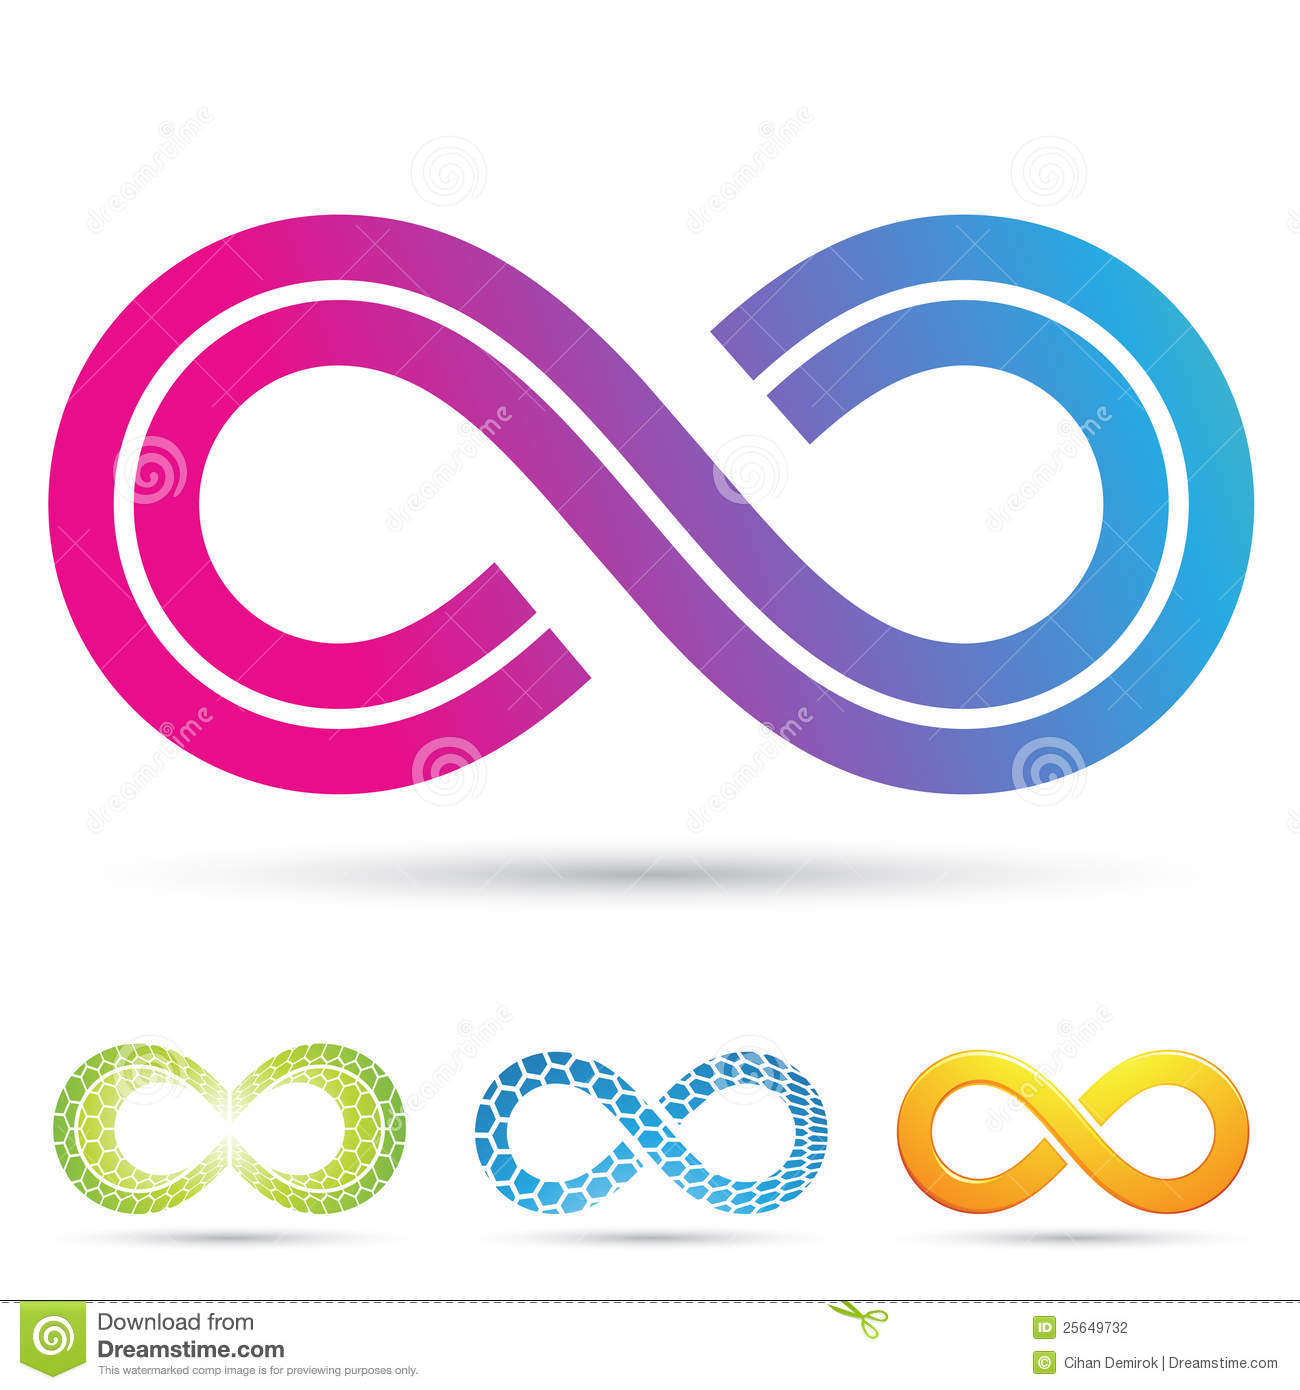 Retro Style Infinity Symbol Stock Vector Illustration Of Dimension